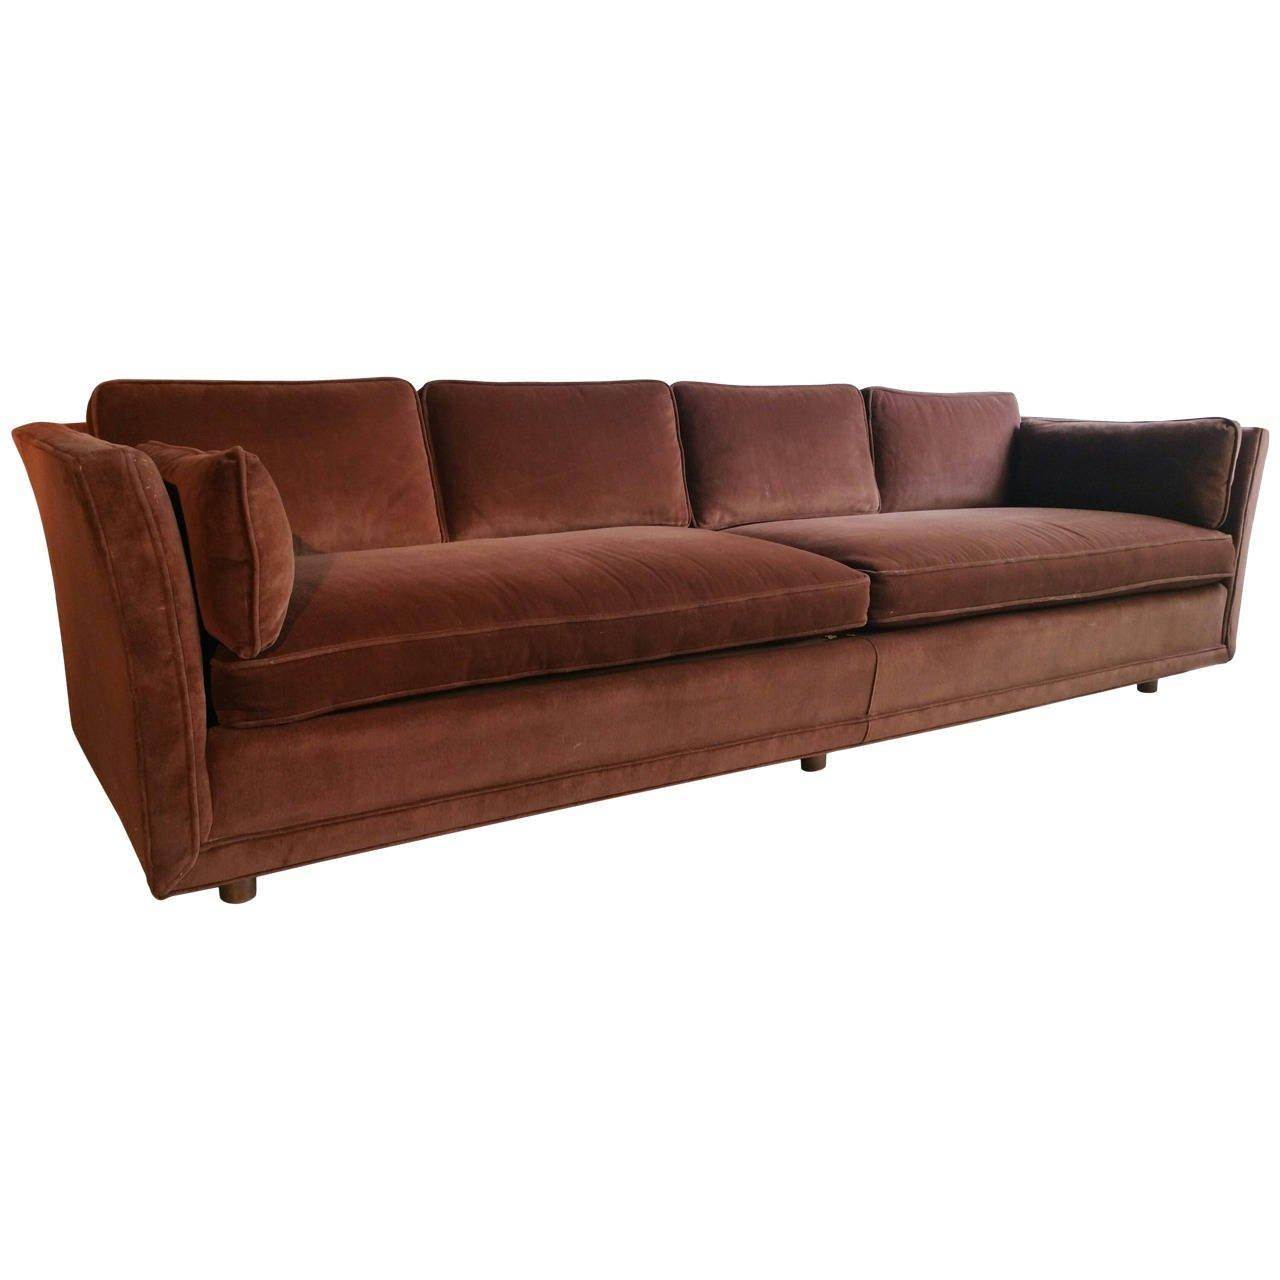 Modernist Four Seater Sofa, Designedharvey Probber At 1Stdibs Pertaining To Four Seater Sofas (View 5 of 20)